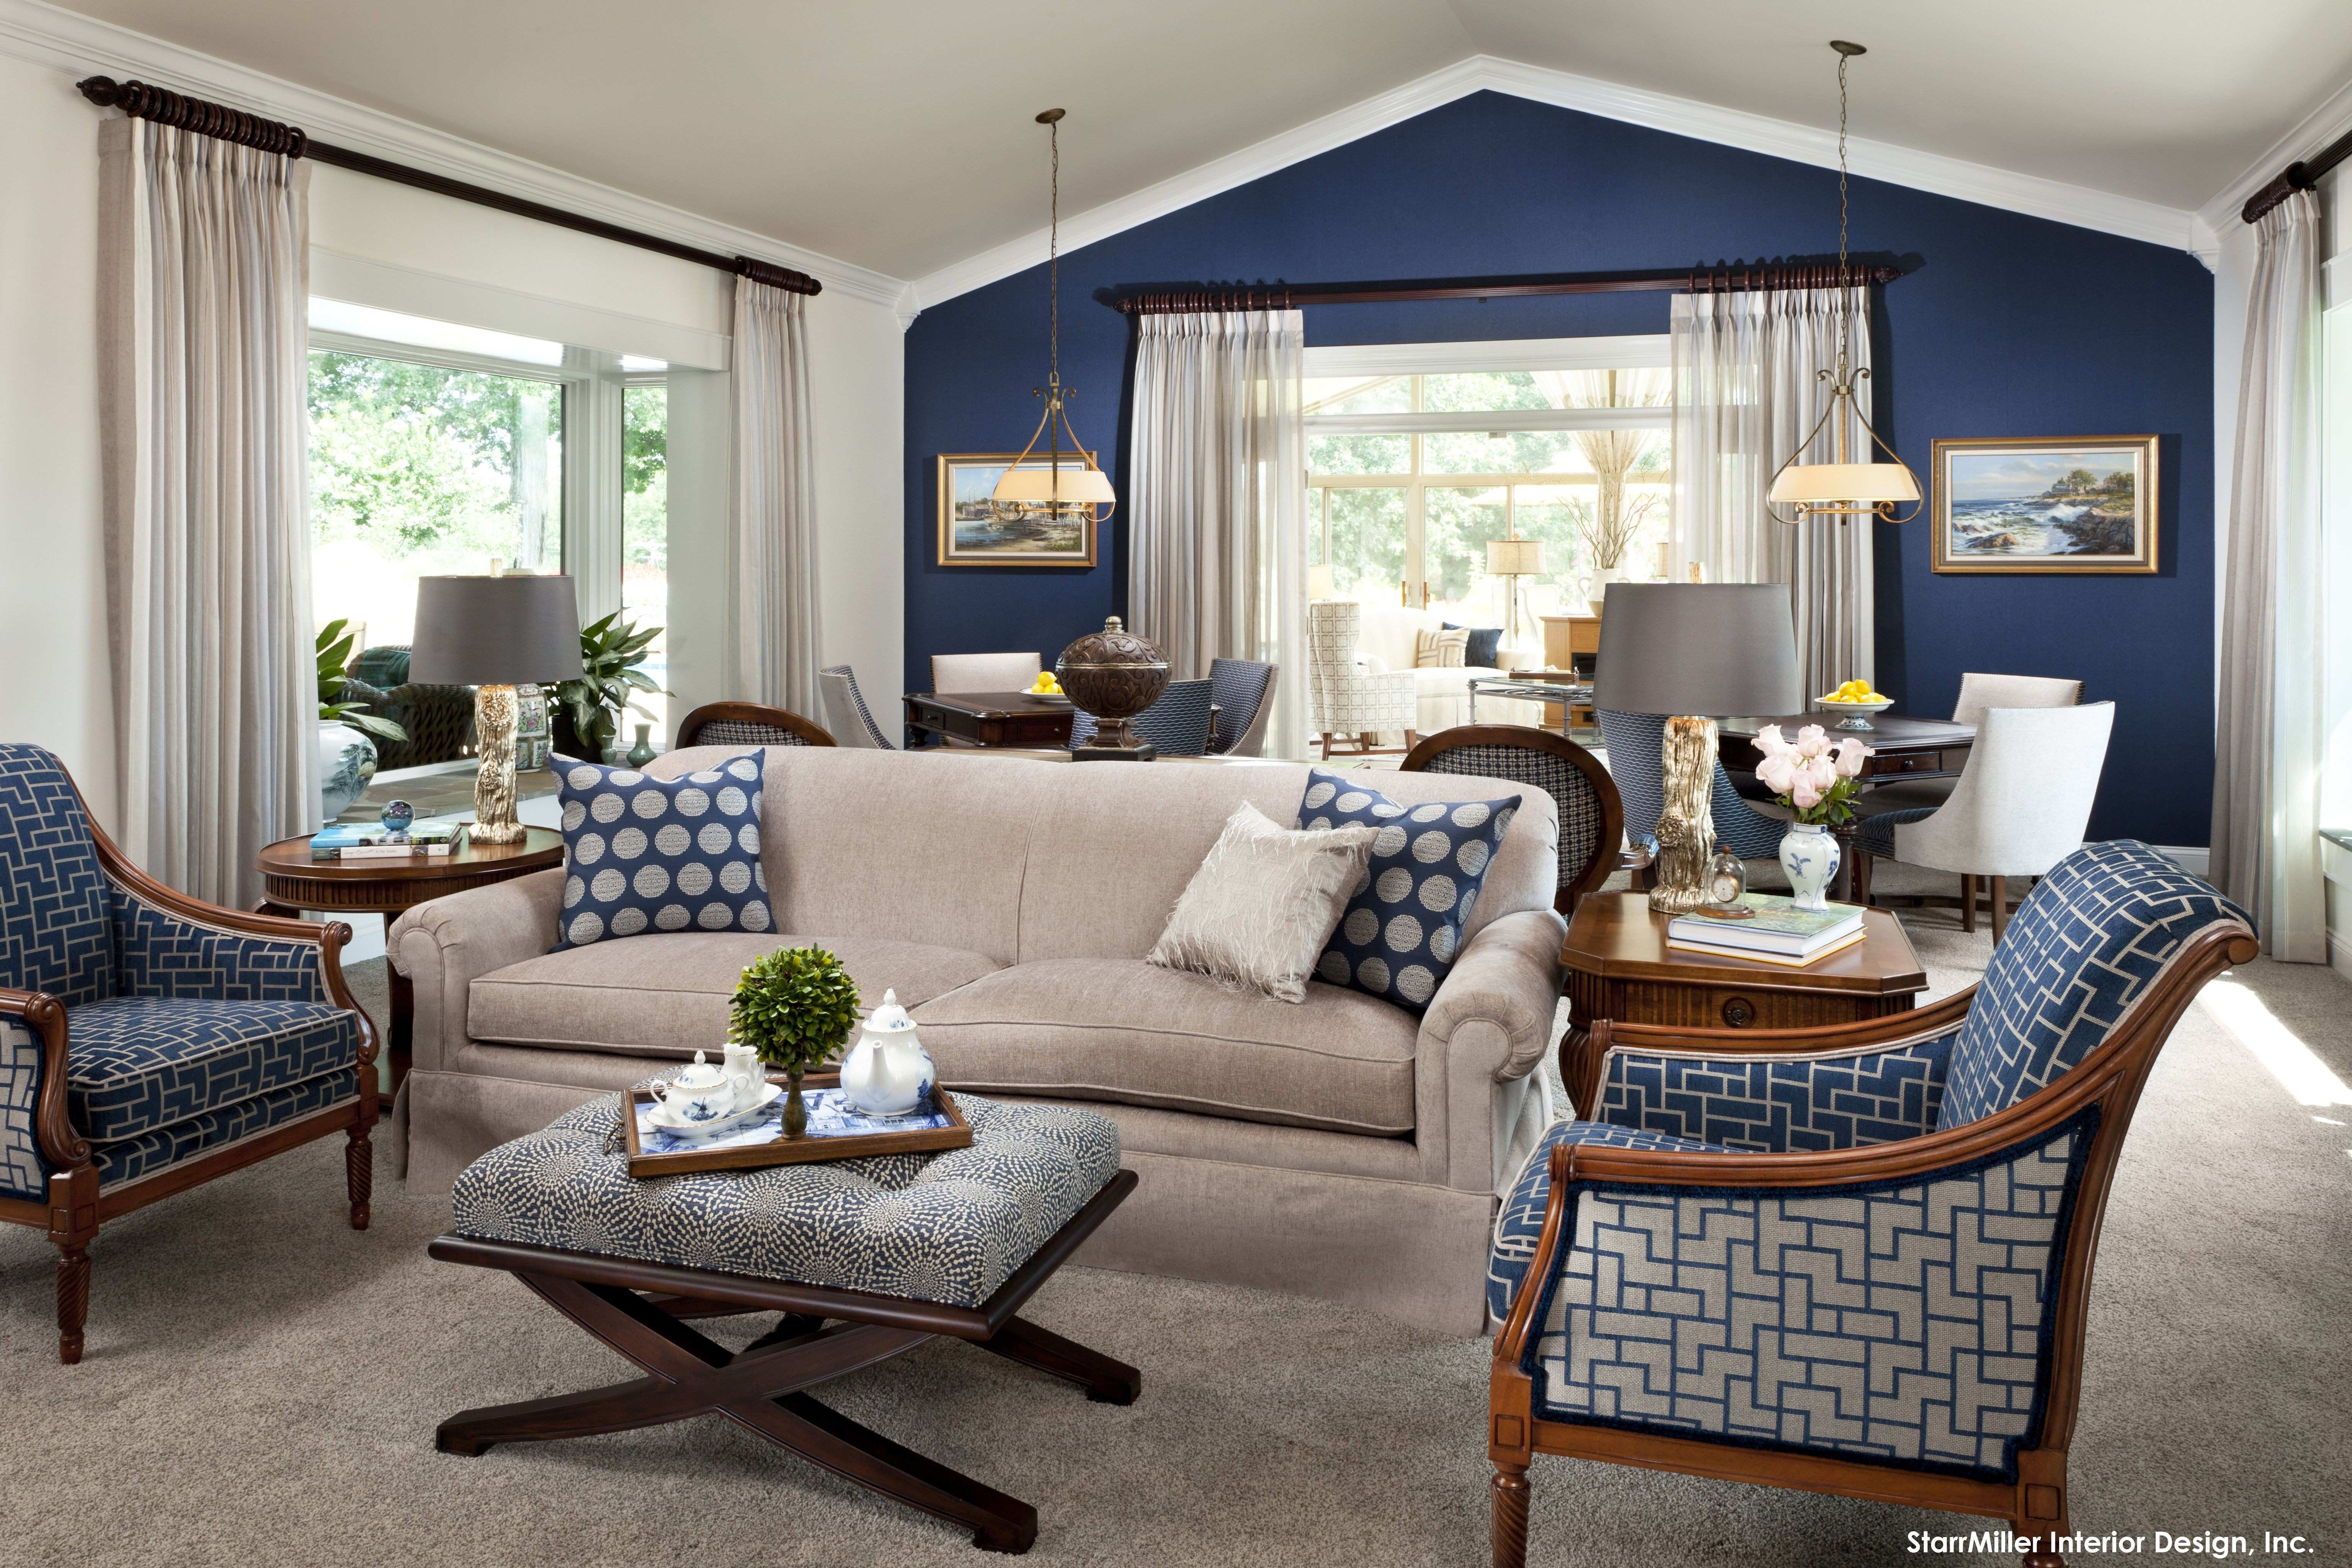 15 Lovely Living Room Designs with Blue Accents Pinterest